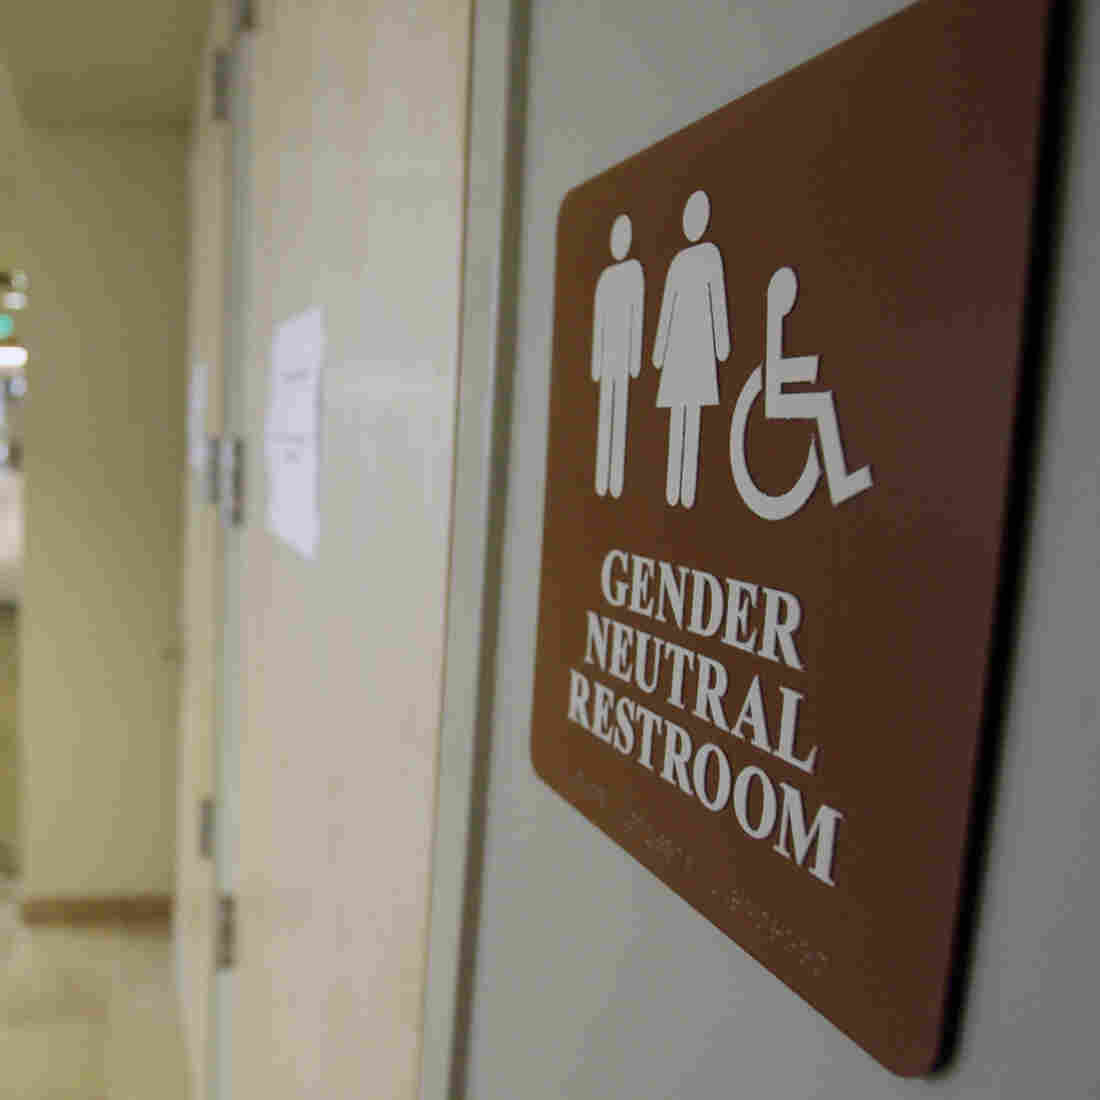 A sign marks the entrance to a gender-neutral restroom at the University of Vermont in Burlington, Vt.